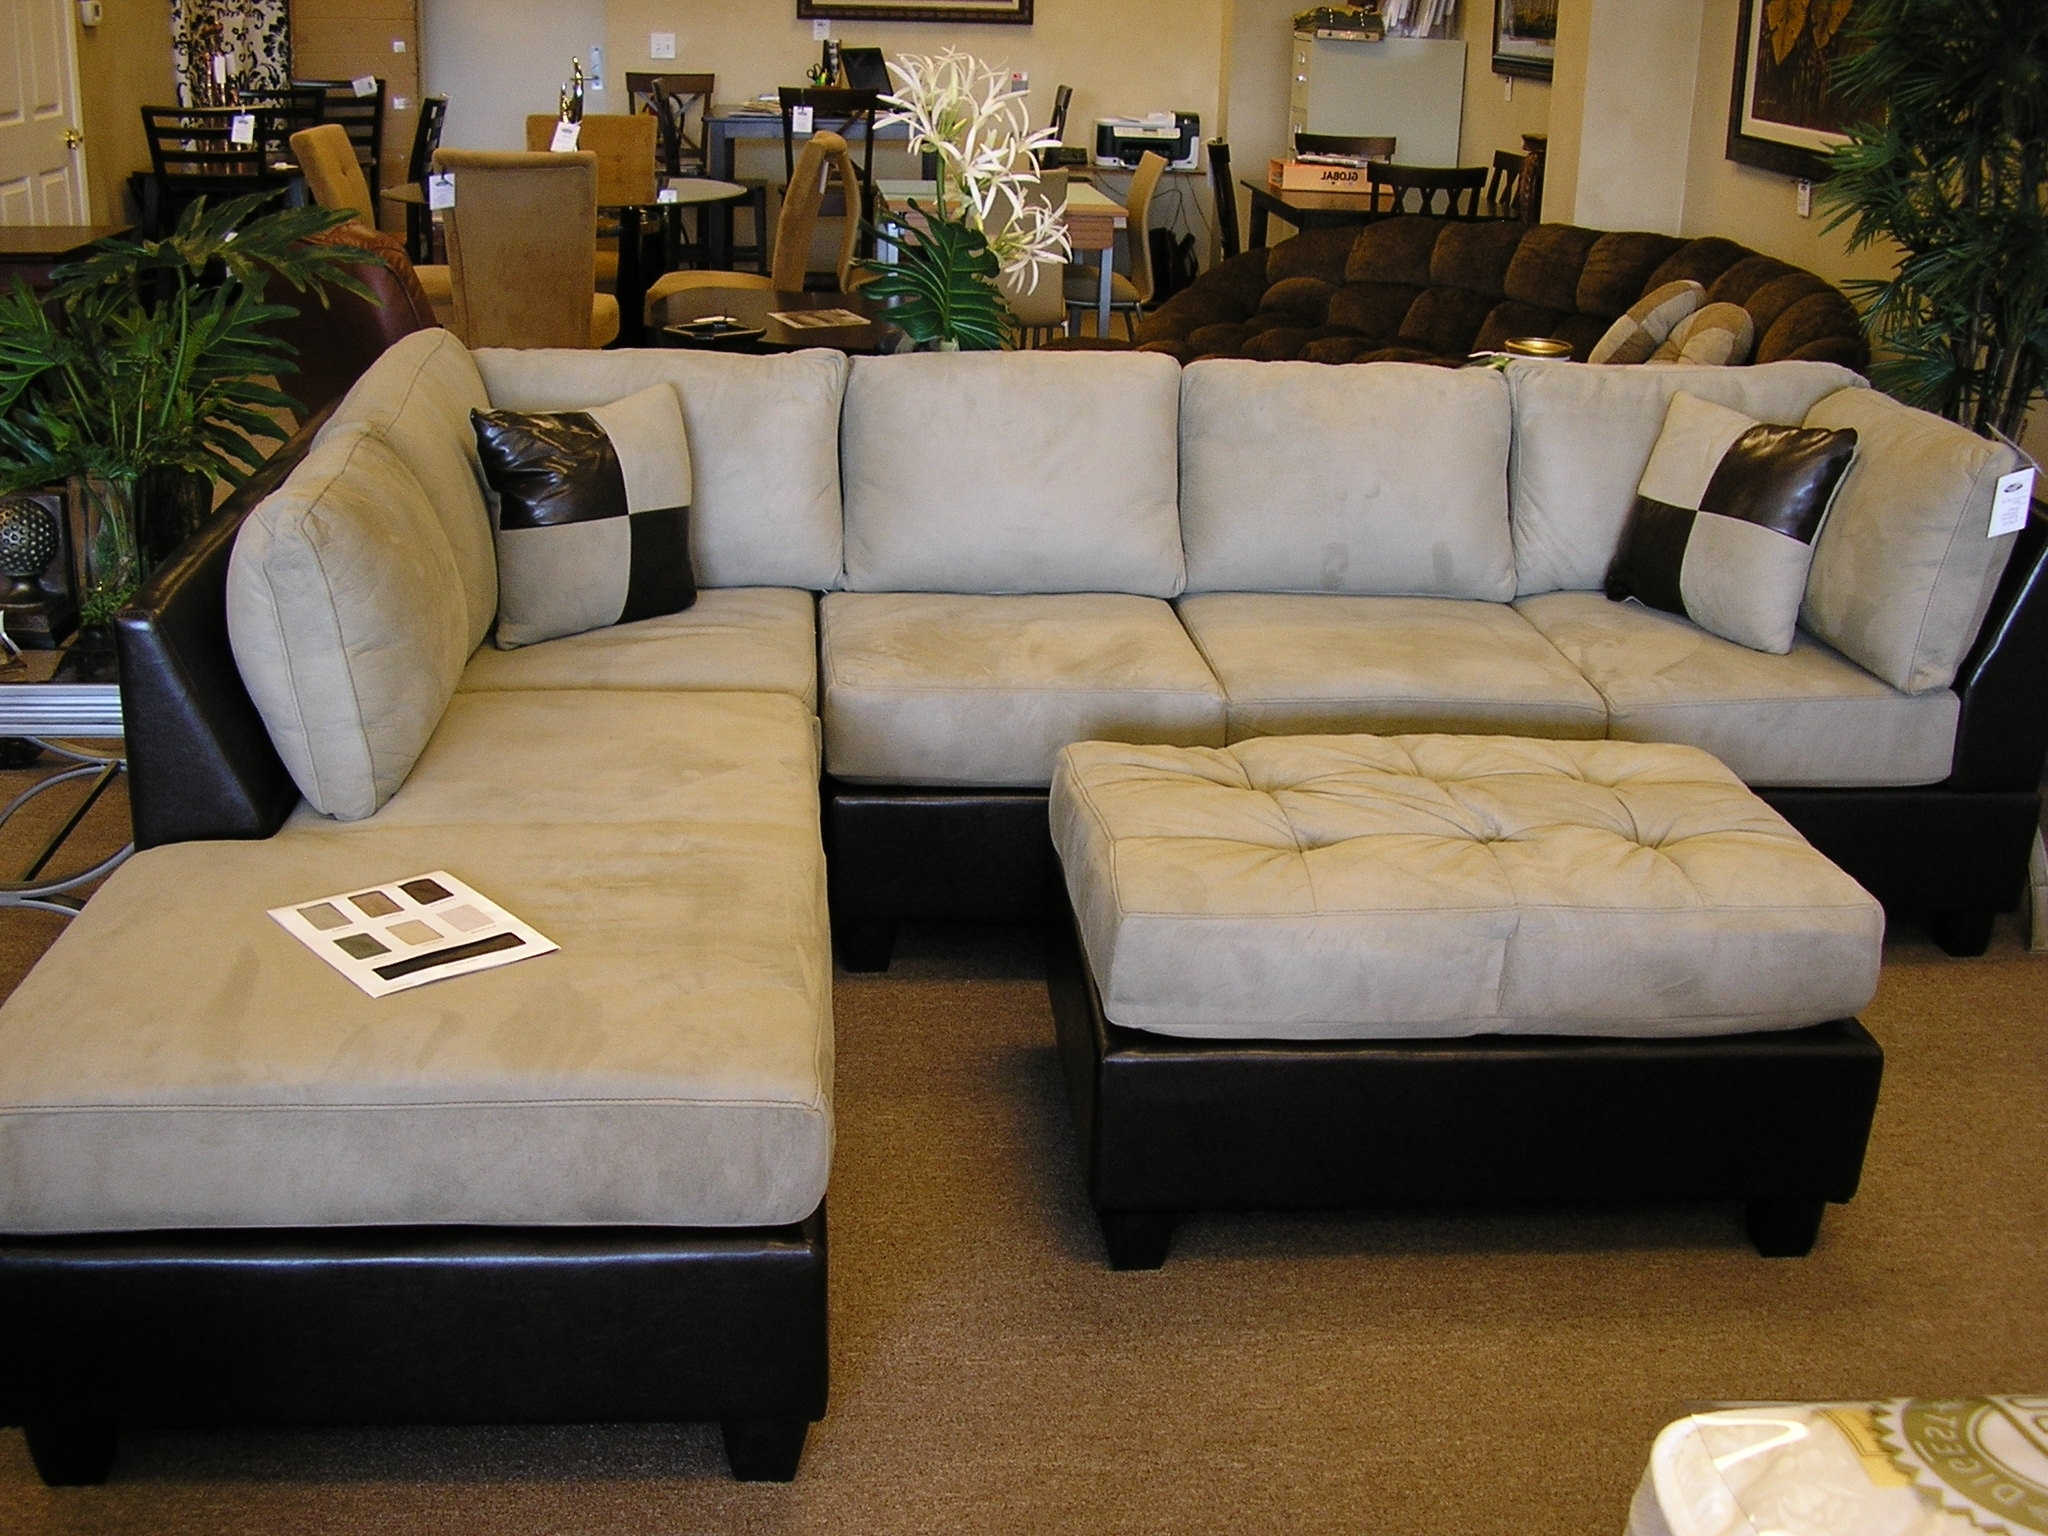 Famous Fabric Sectional Sofas With Chaise Throughout Extraordinary Fabric Sectional Sofas With Chaise 16 For Your (View 10 of 15)